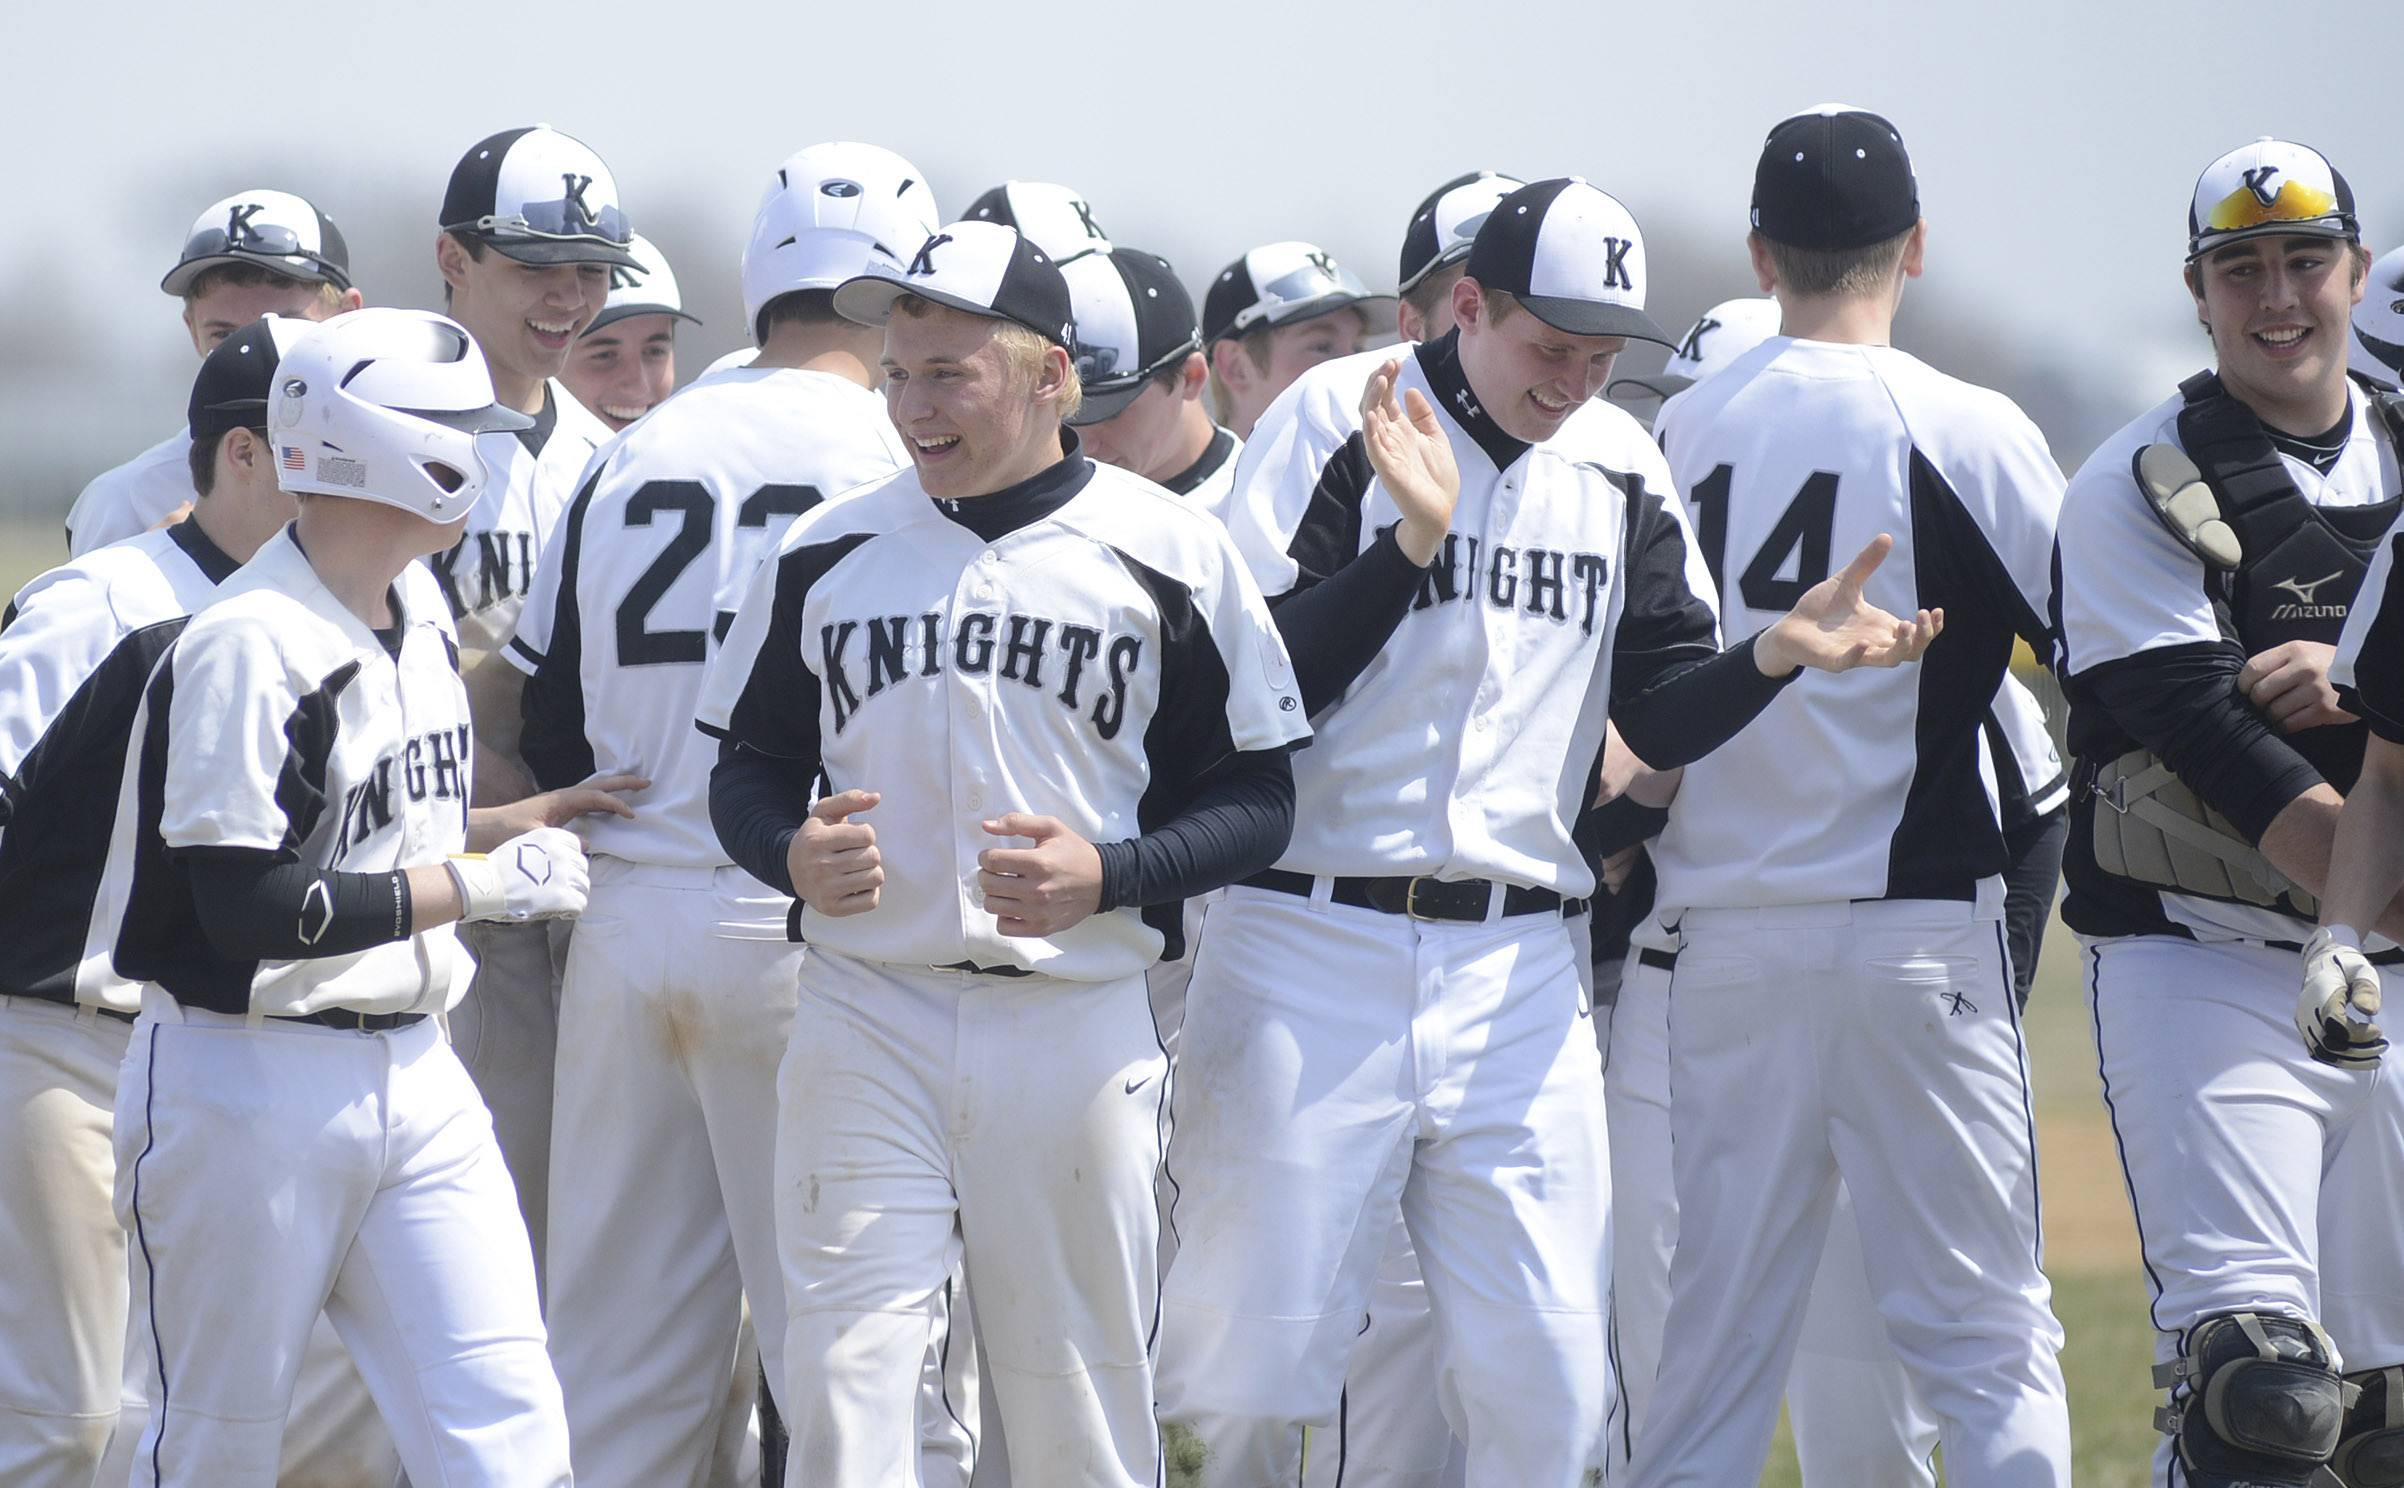 Kaneland's Nick Henne, center, celebrates with the Knights after their tie-breaking win over Geneva in the ninth inning on Saturday, April 19. Henne was the Knights' final pitcher of the game.